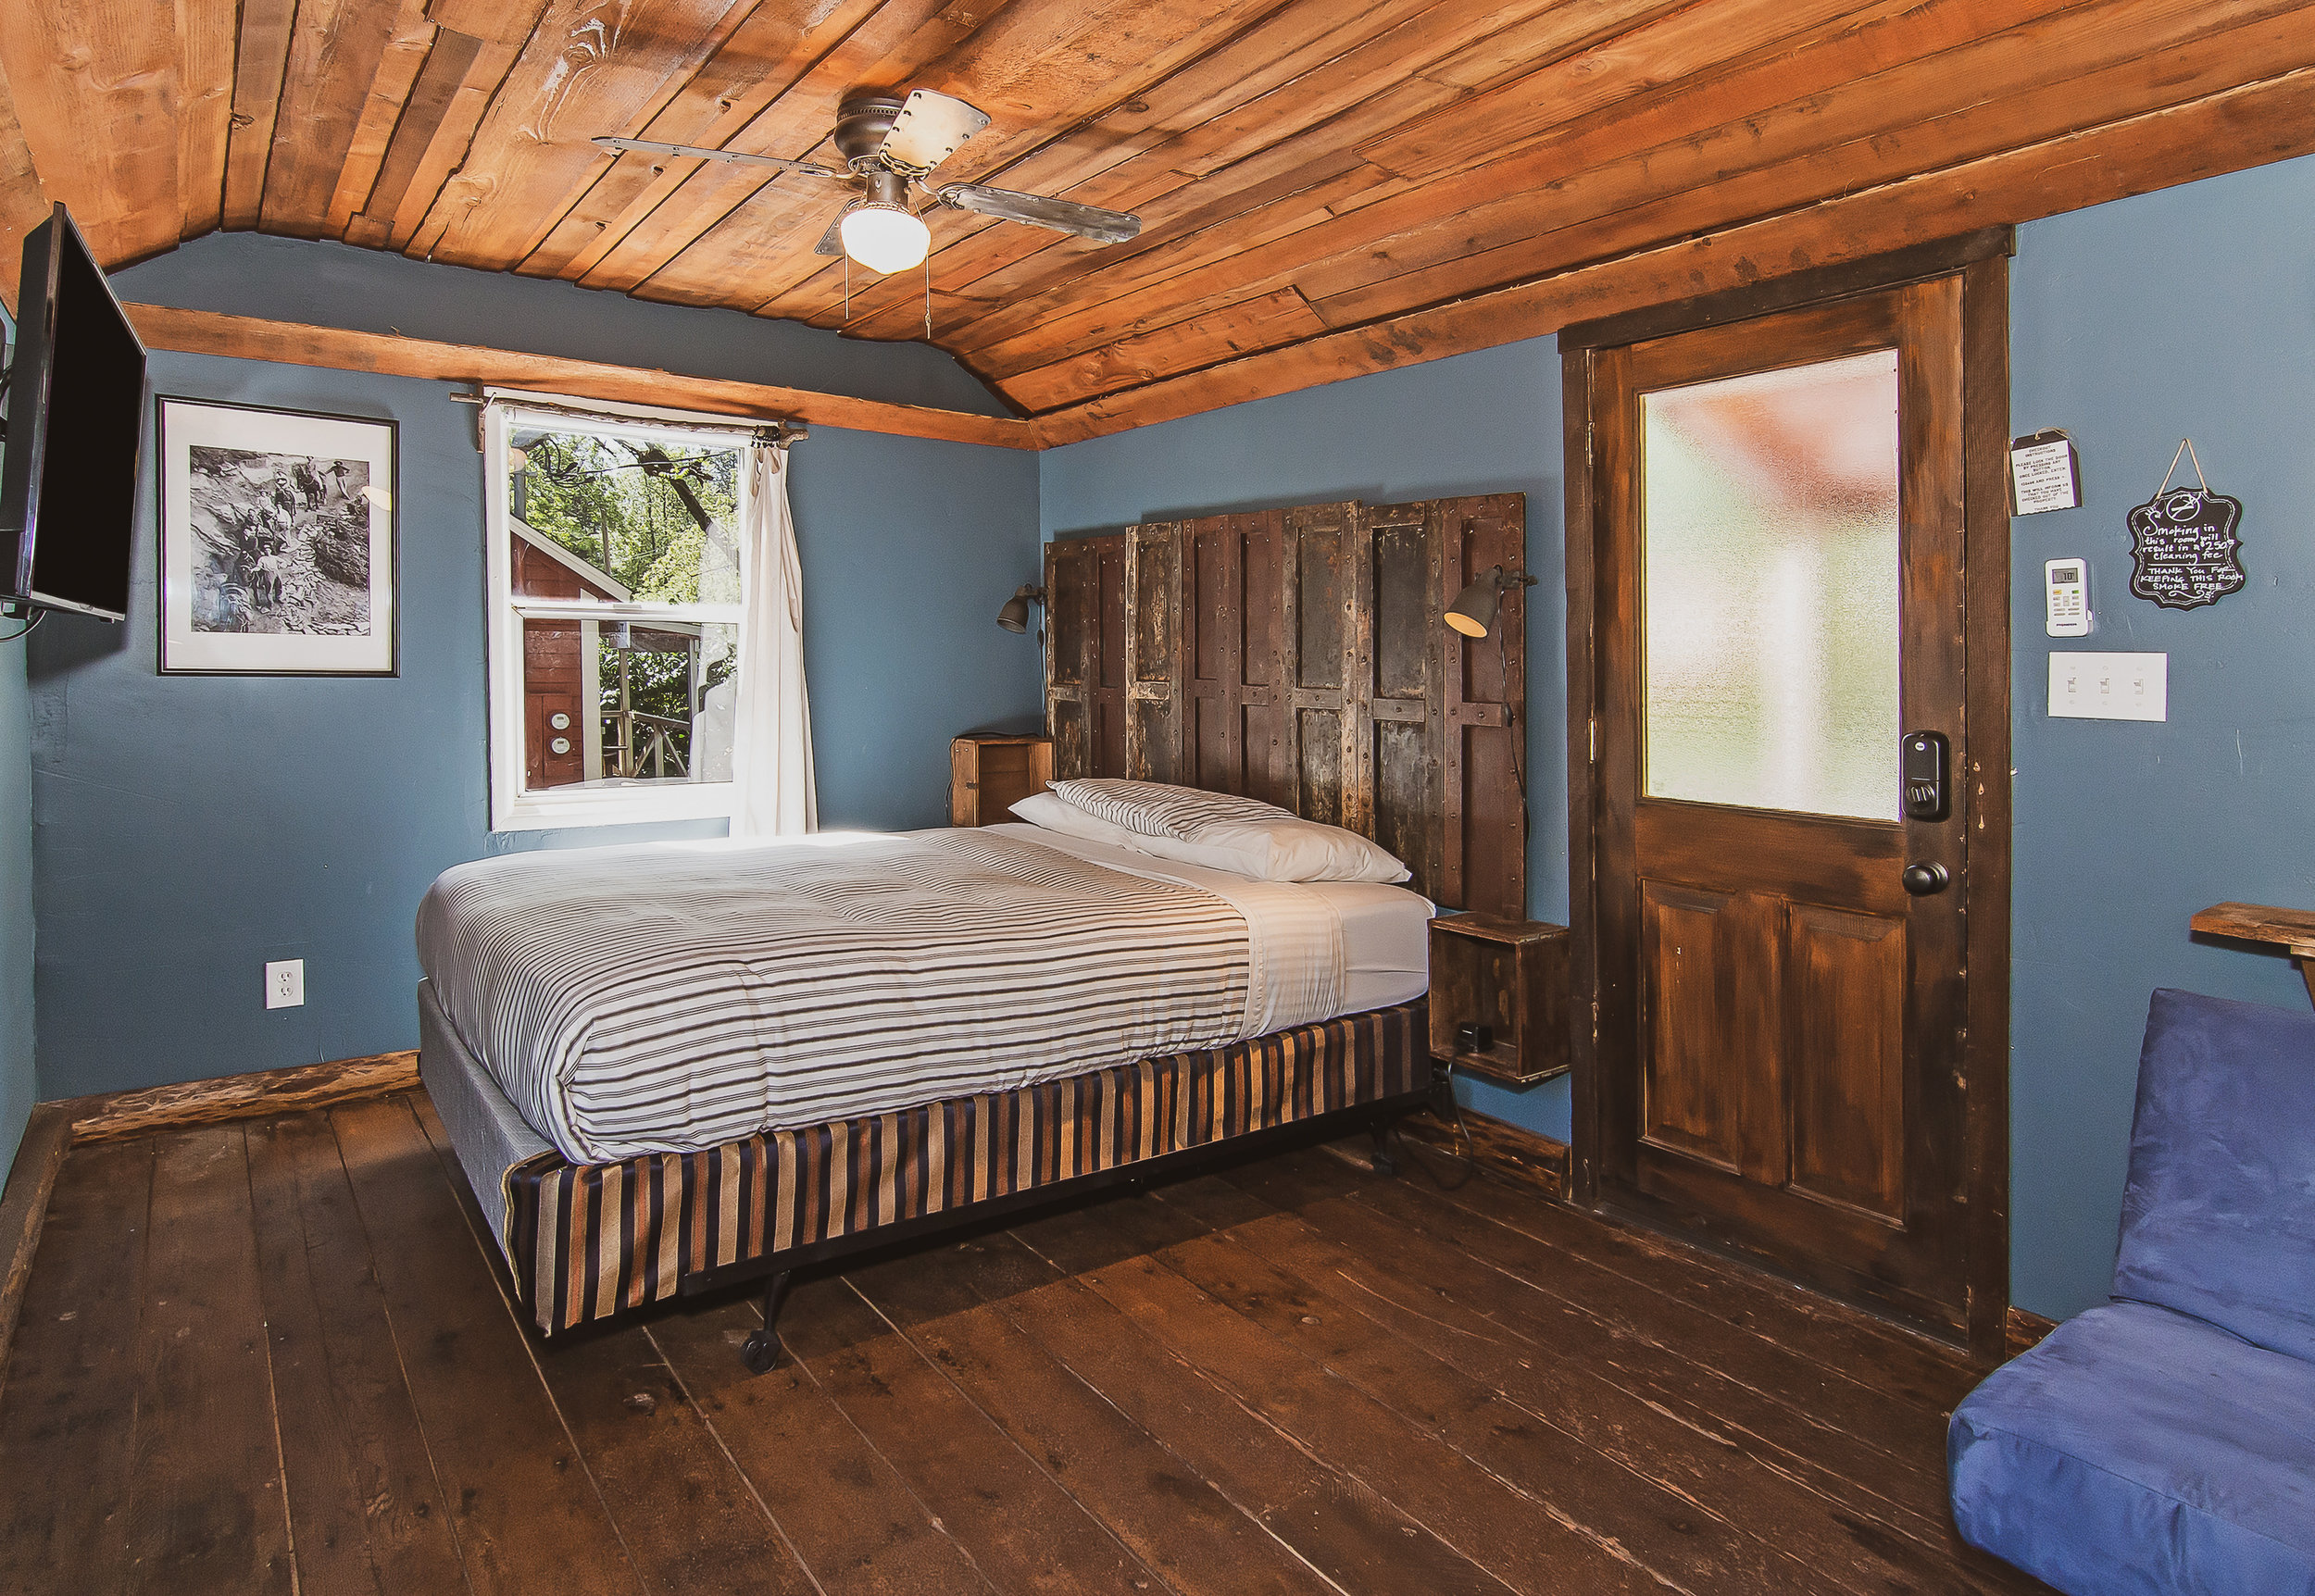 #7 Hazzard Mine - sleeps 1-3